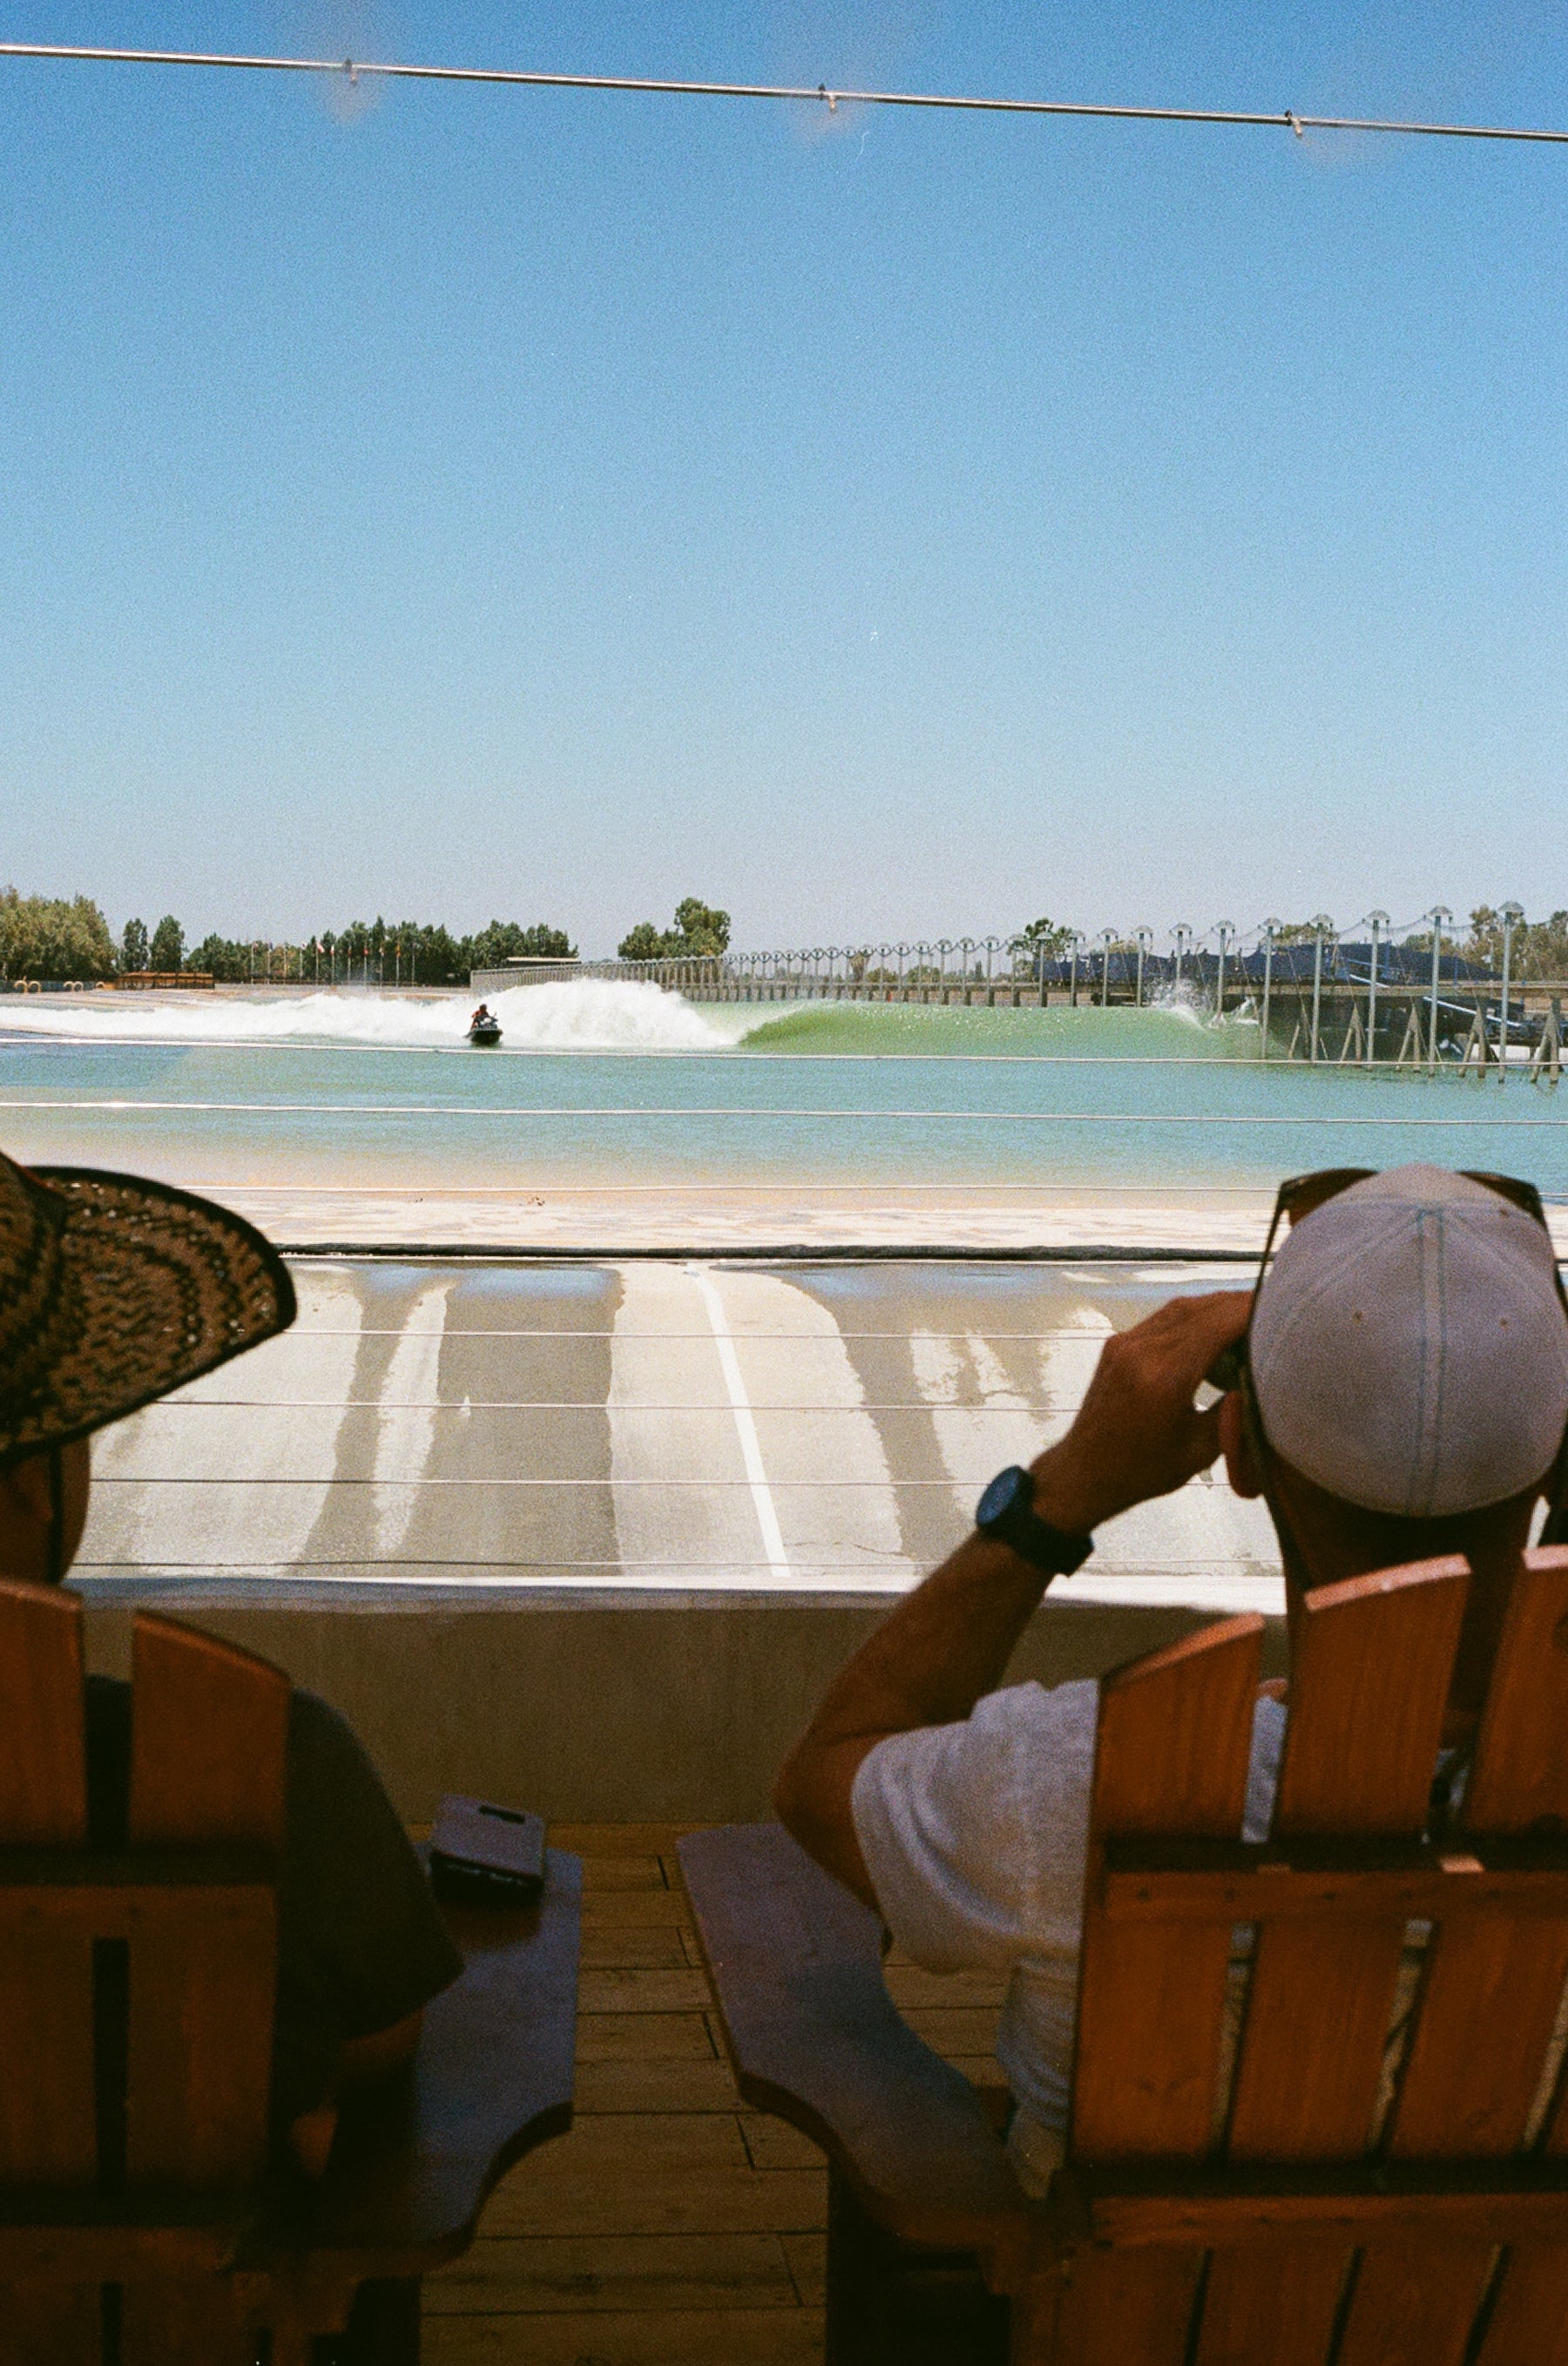 Riding Fake Waves Aloha Beach Club at the Kelly Slater Wave Pool